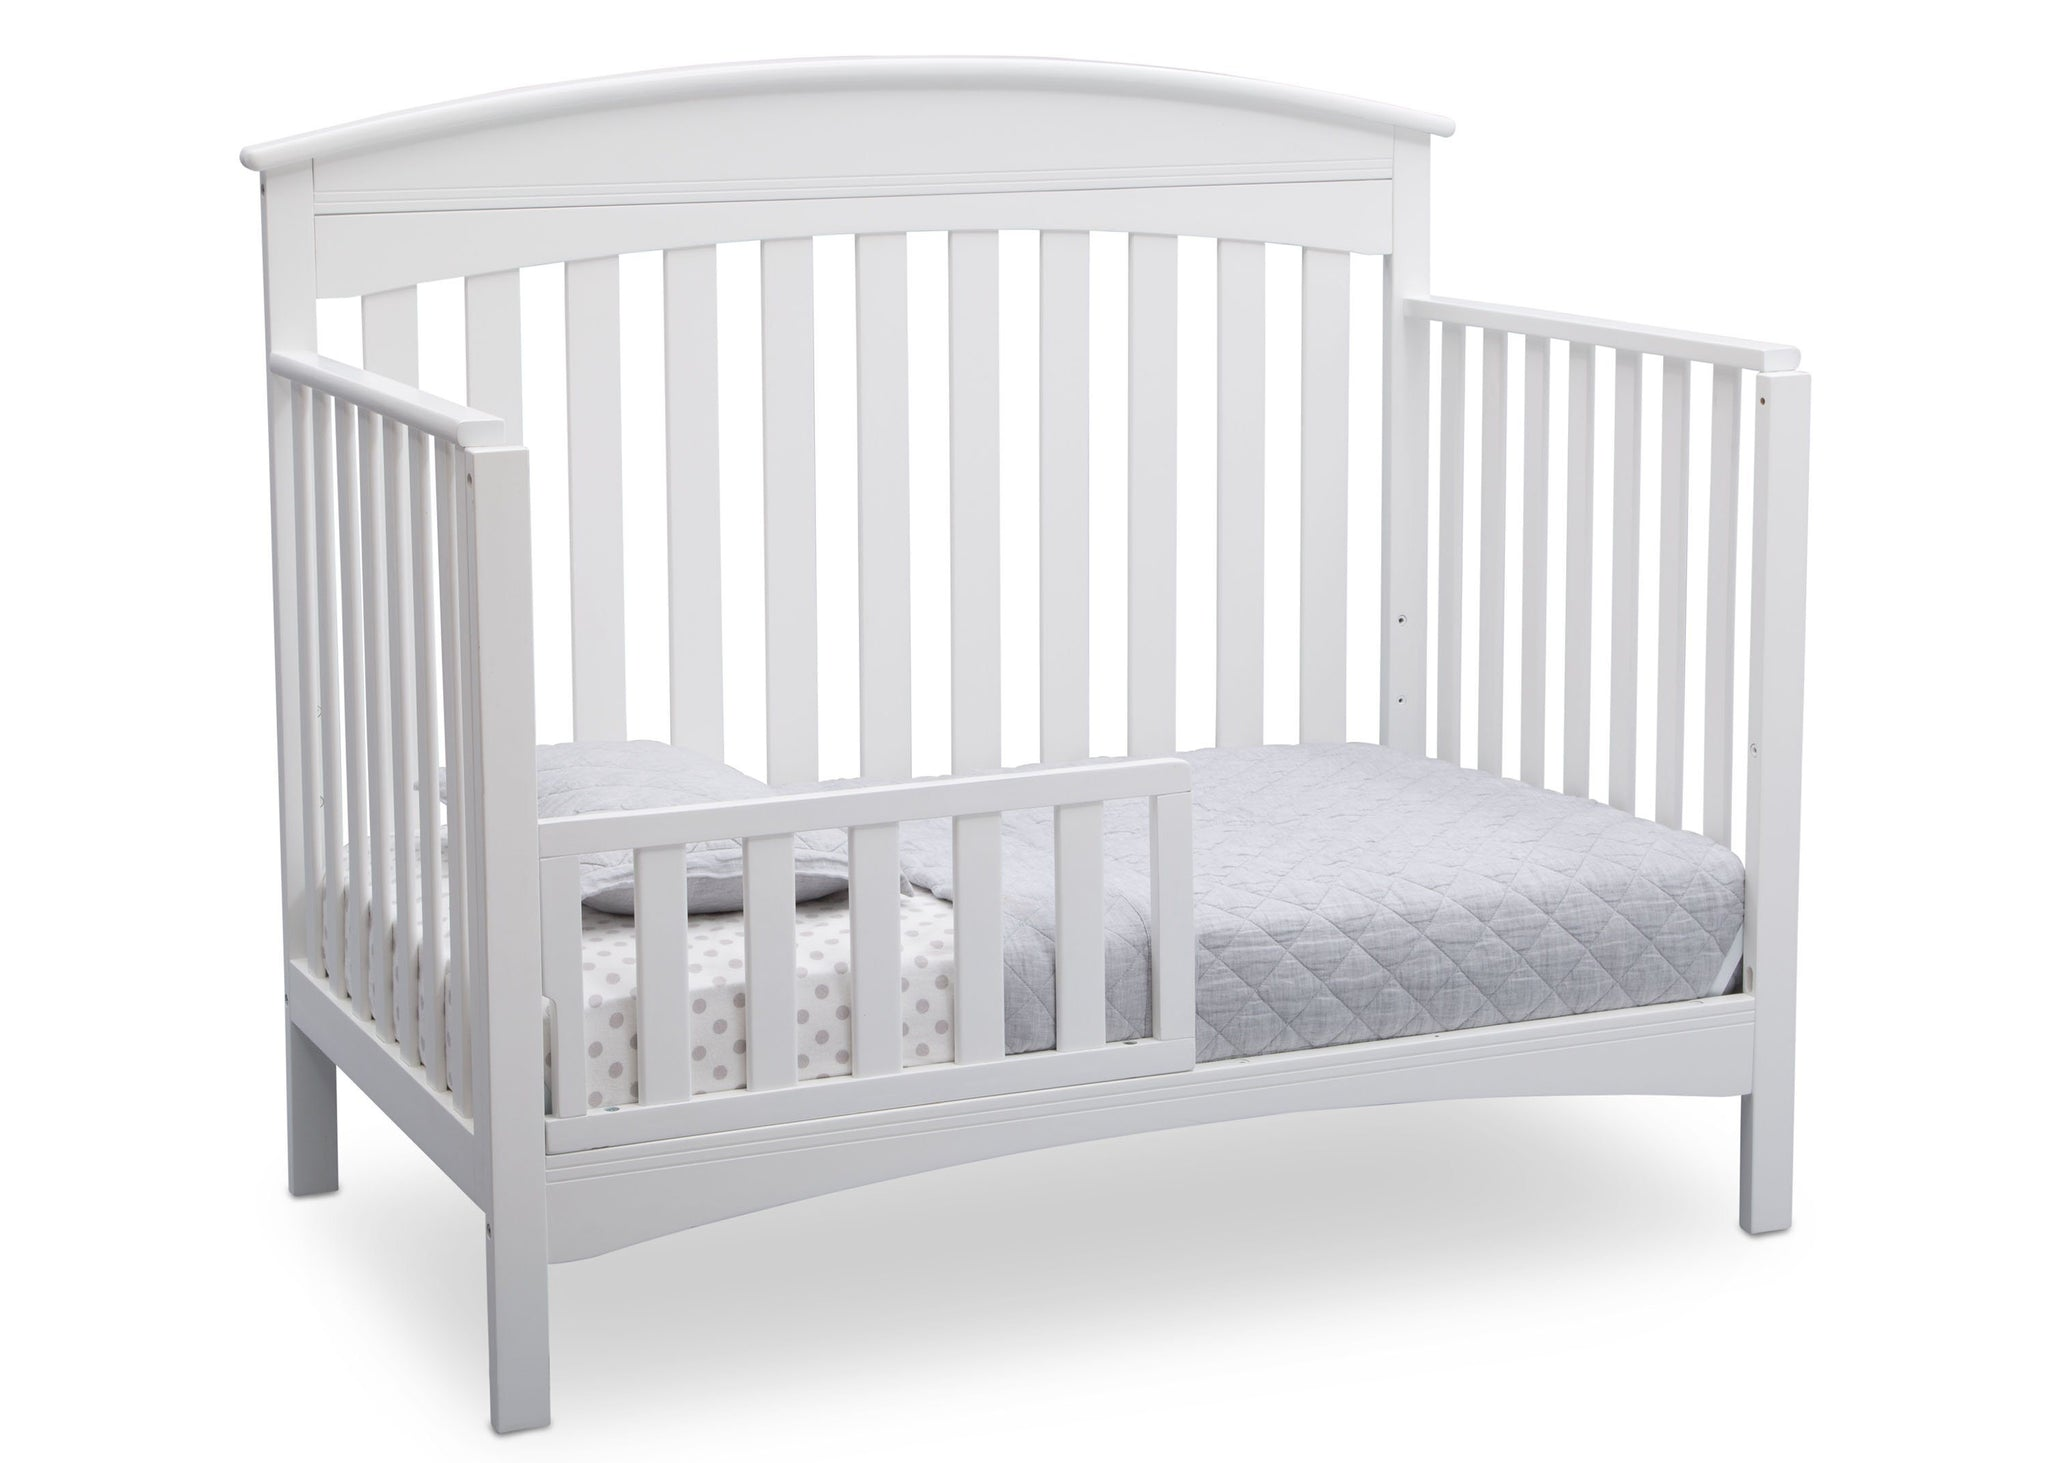 Delta Children Bianca (130) Bennington Elite Arched 4-in-1 Convertible Crib, Toddler Bed Angle, b4b